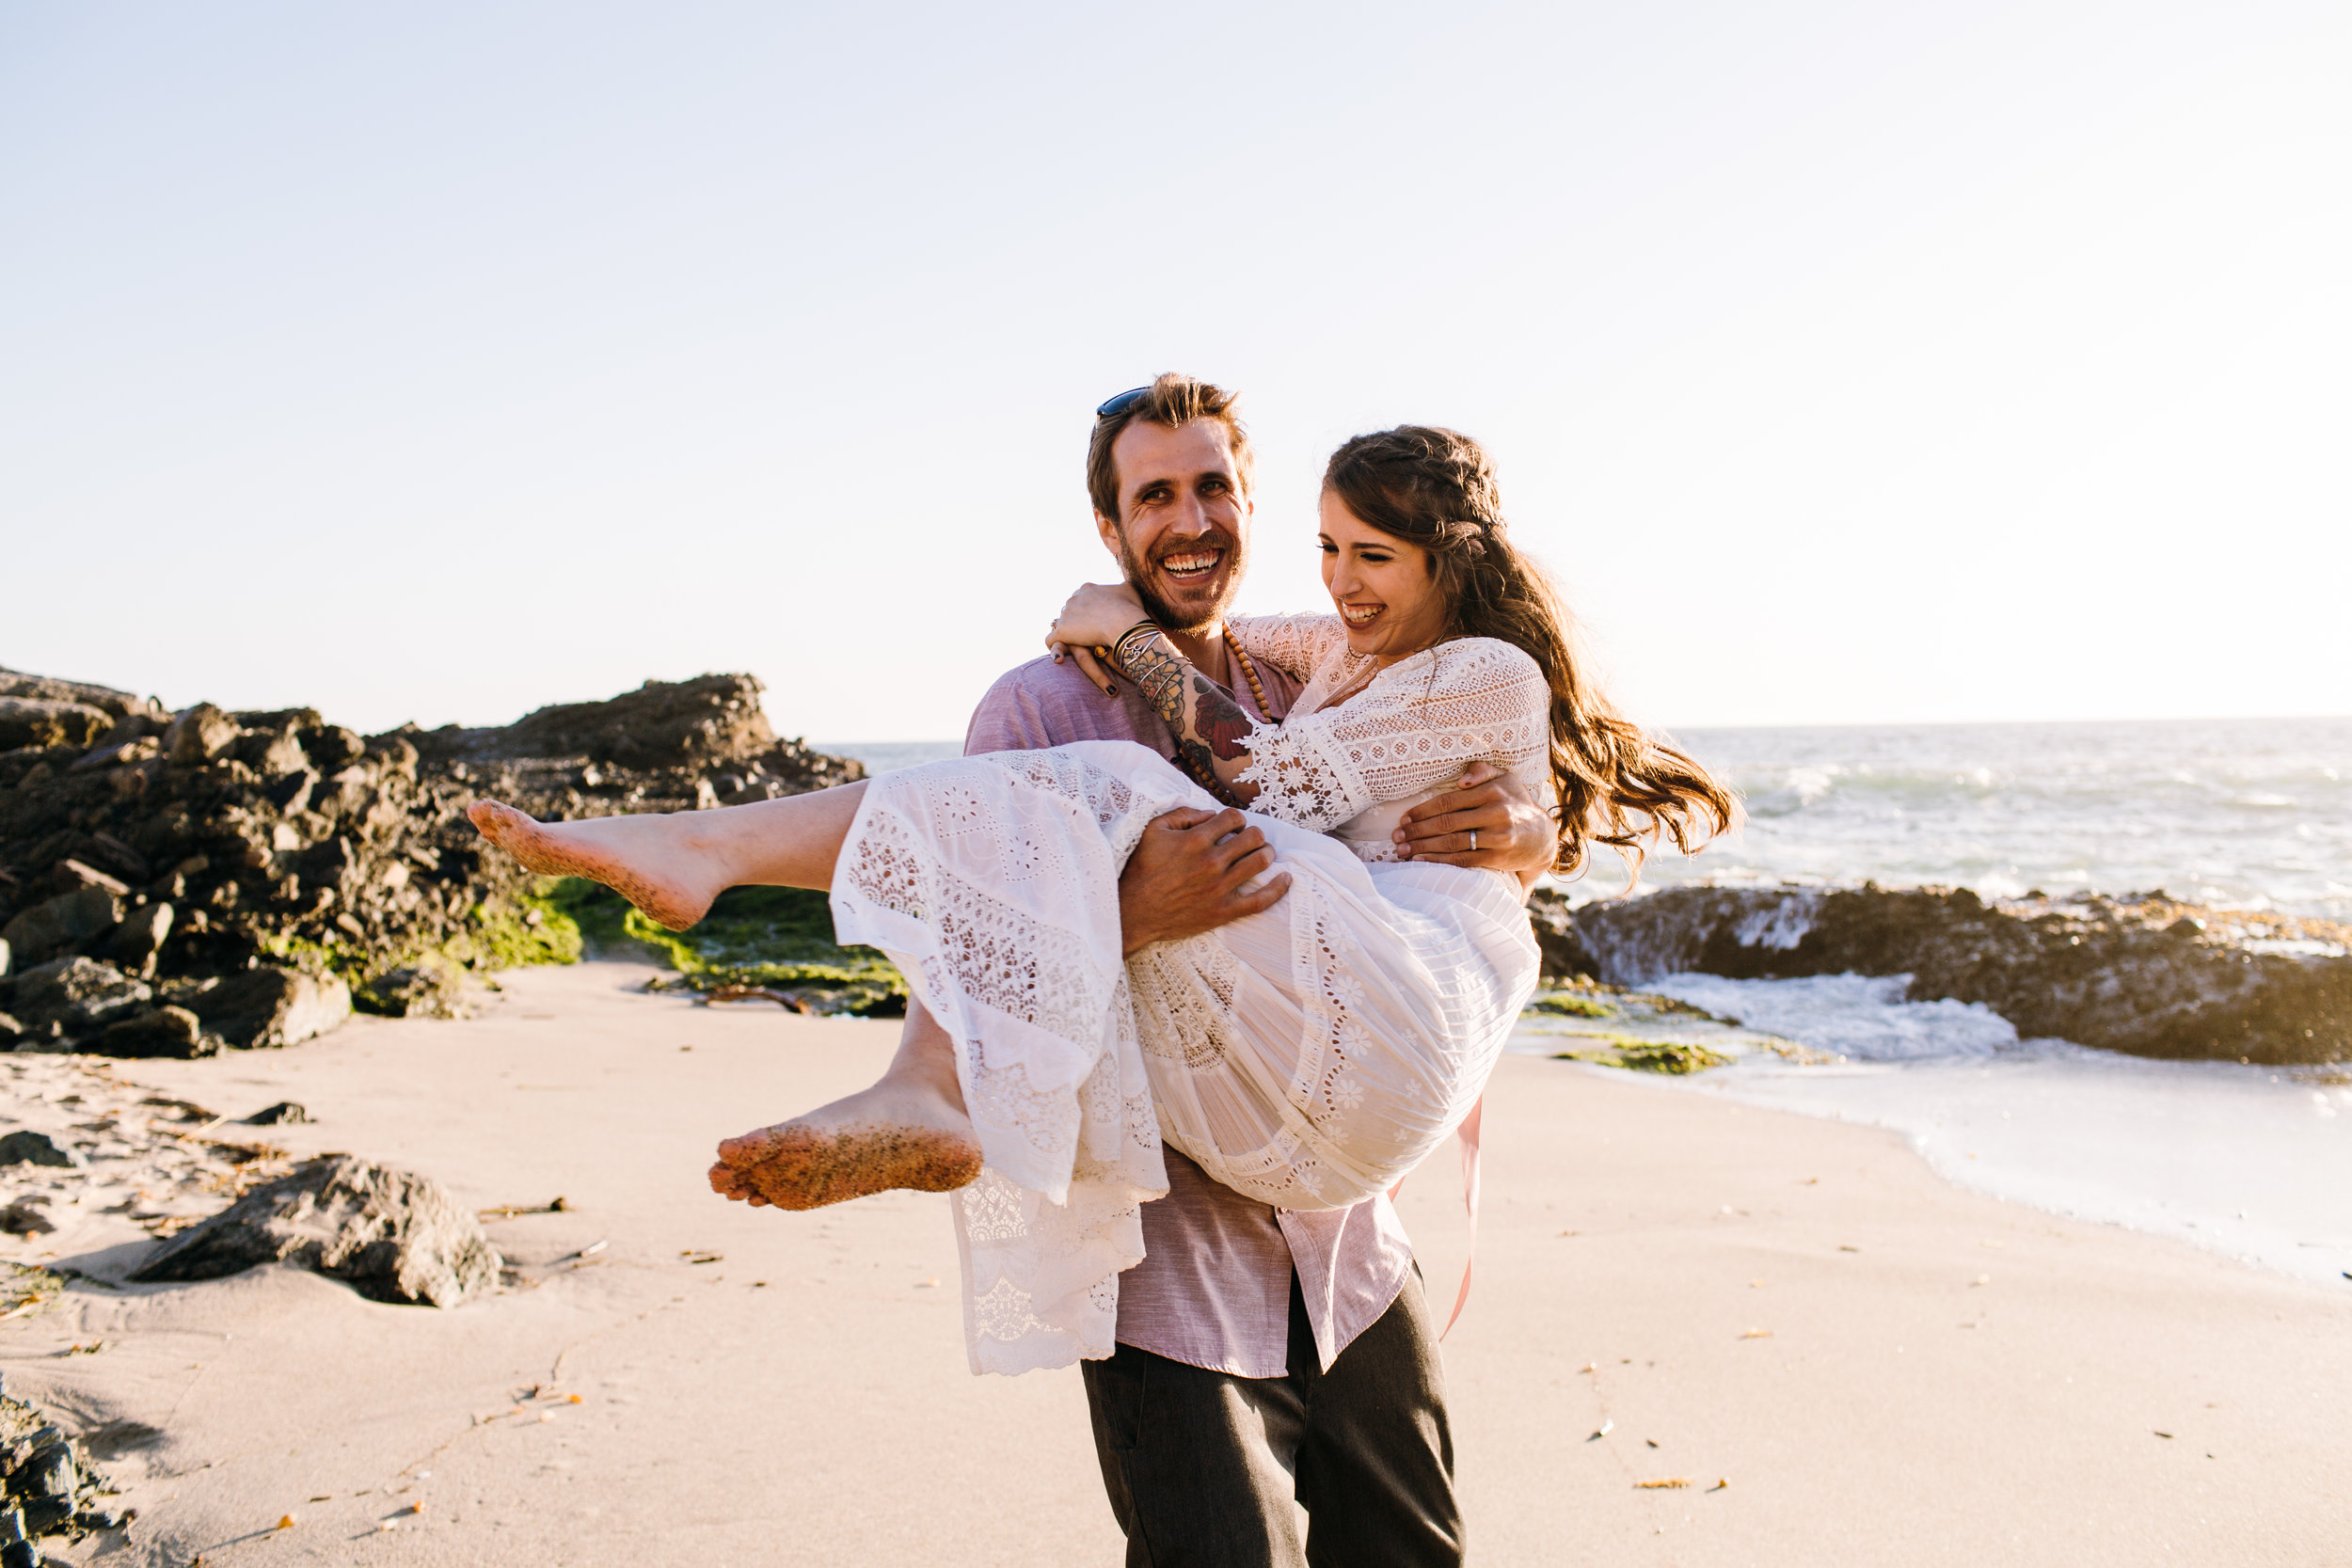 KaraNixonWeddings-LagunaBeach-Tablerock-Elopement-41.jpg